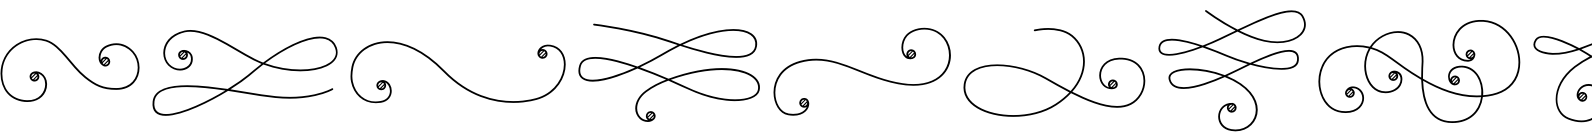 La Chic Flourishes Shaded Font